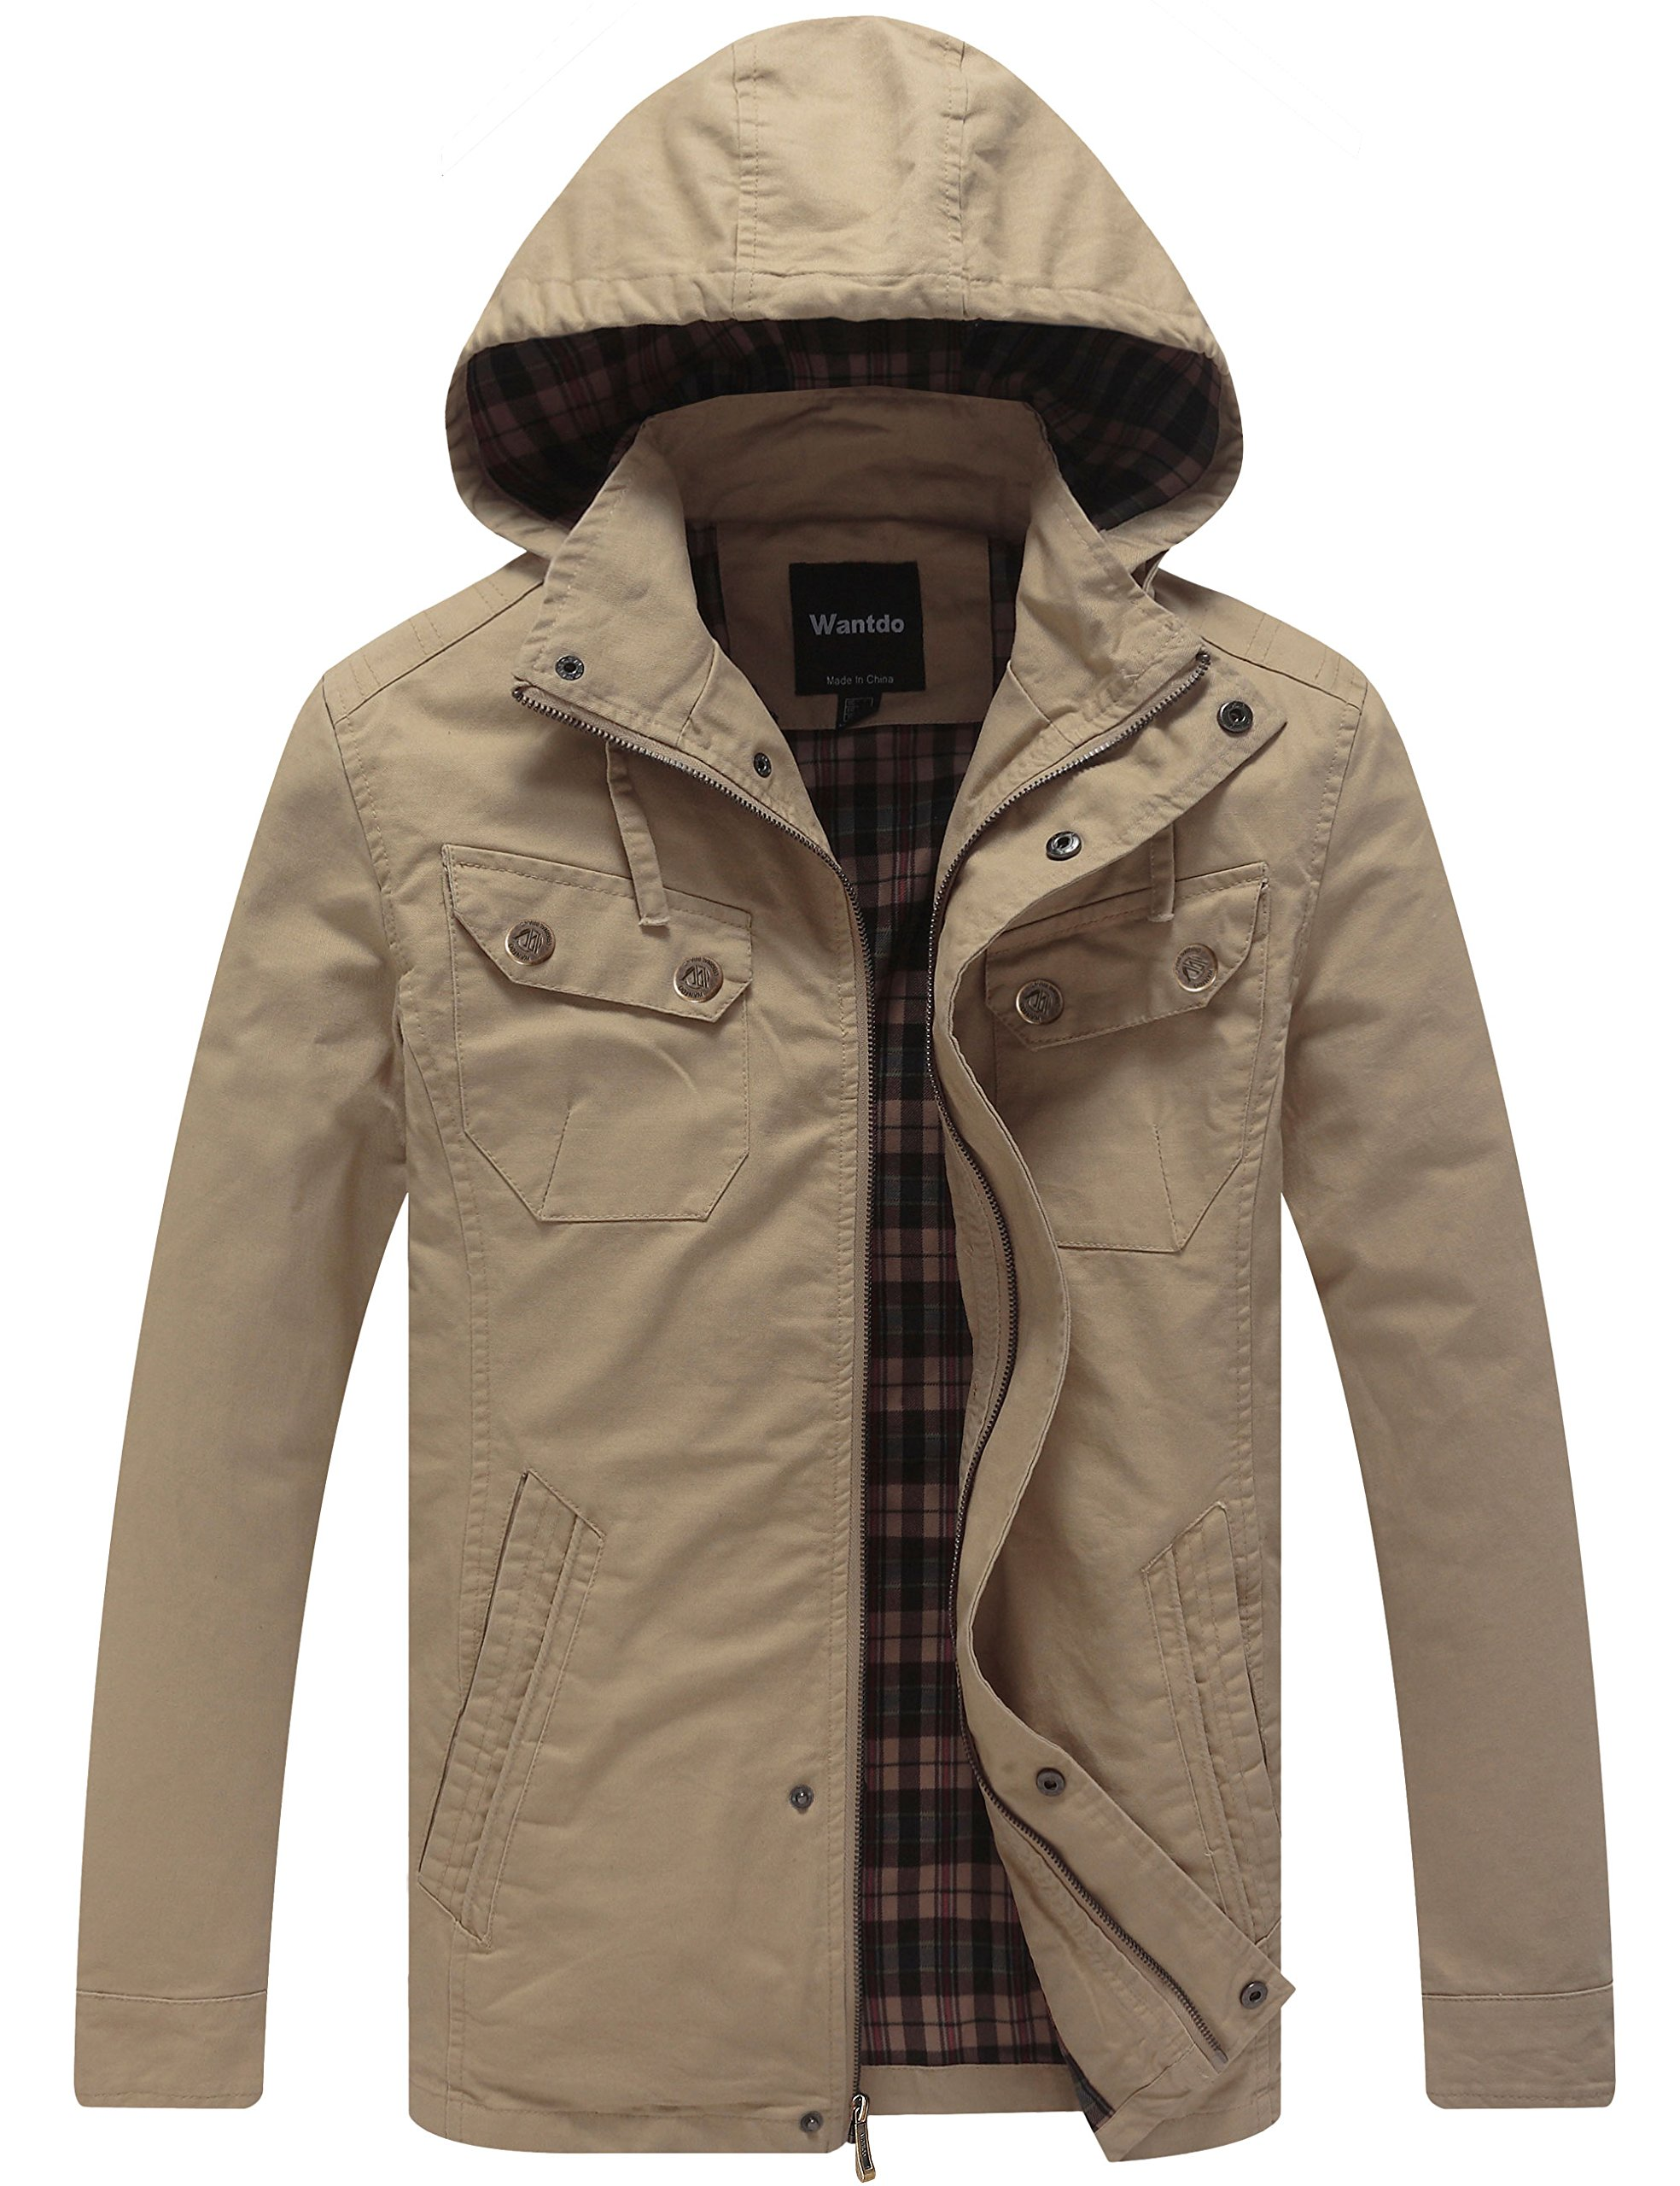 Wantdo Men's Cotton Lightweight Jacket with Removable Hood (Khaki, Small)